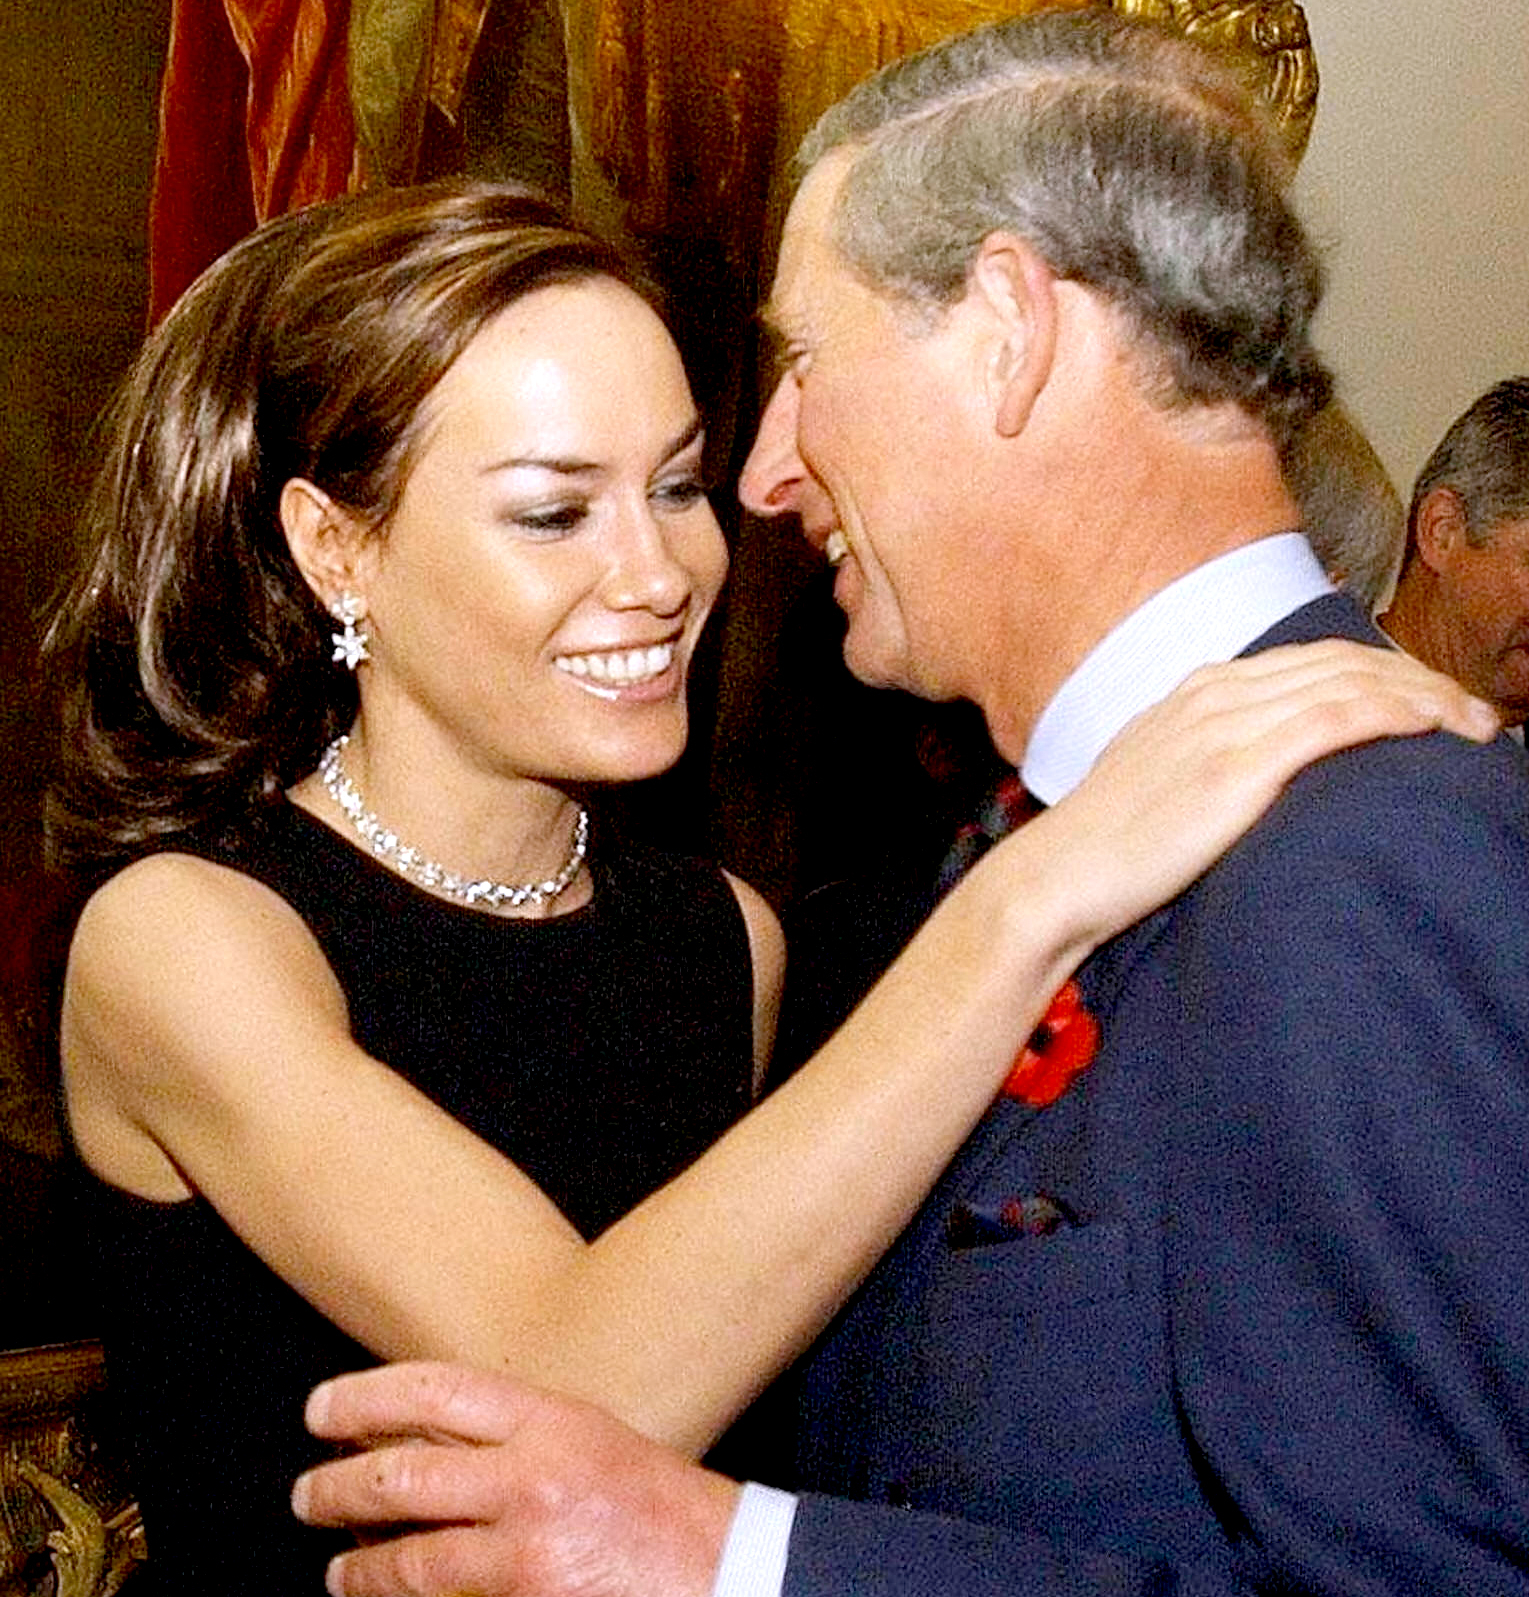 The Prince of Wales is geeted by Tara Palmer-Tomkinson during a reception at Clarence House, London, 27 October, 2003.